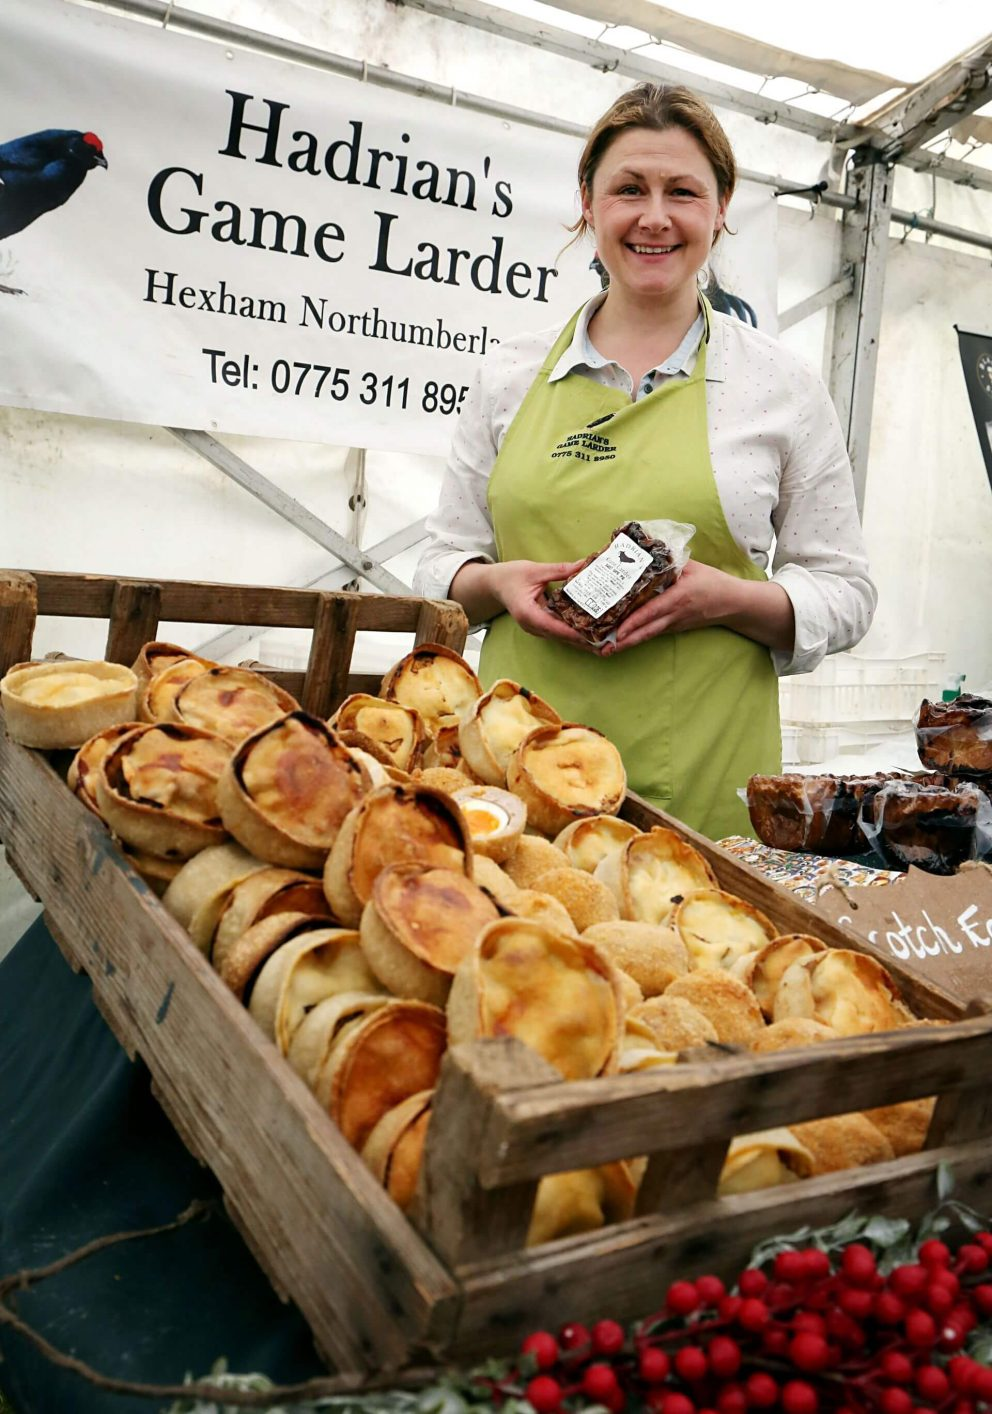 Pies from Hadrian's Game Larder stall